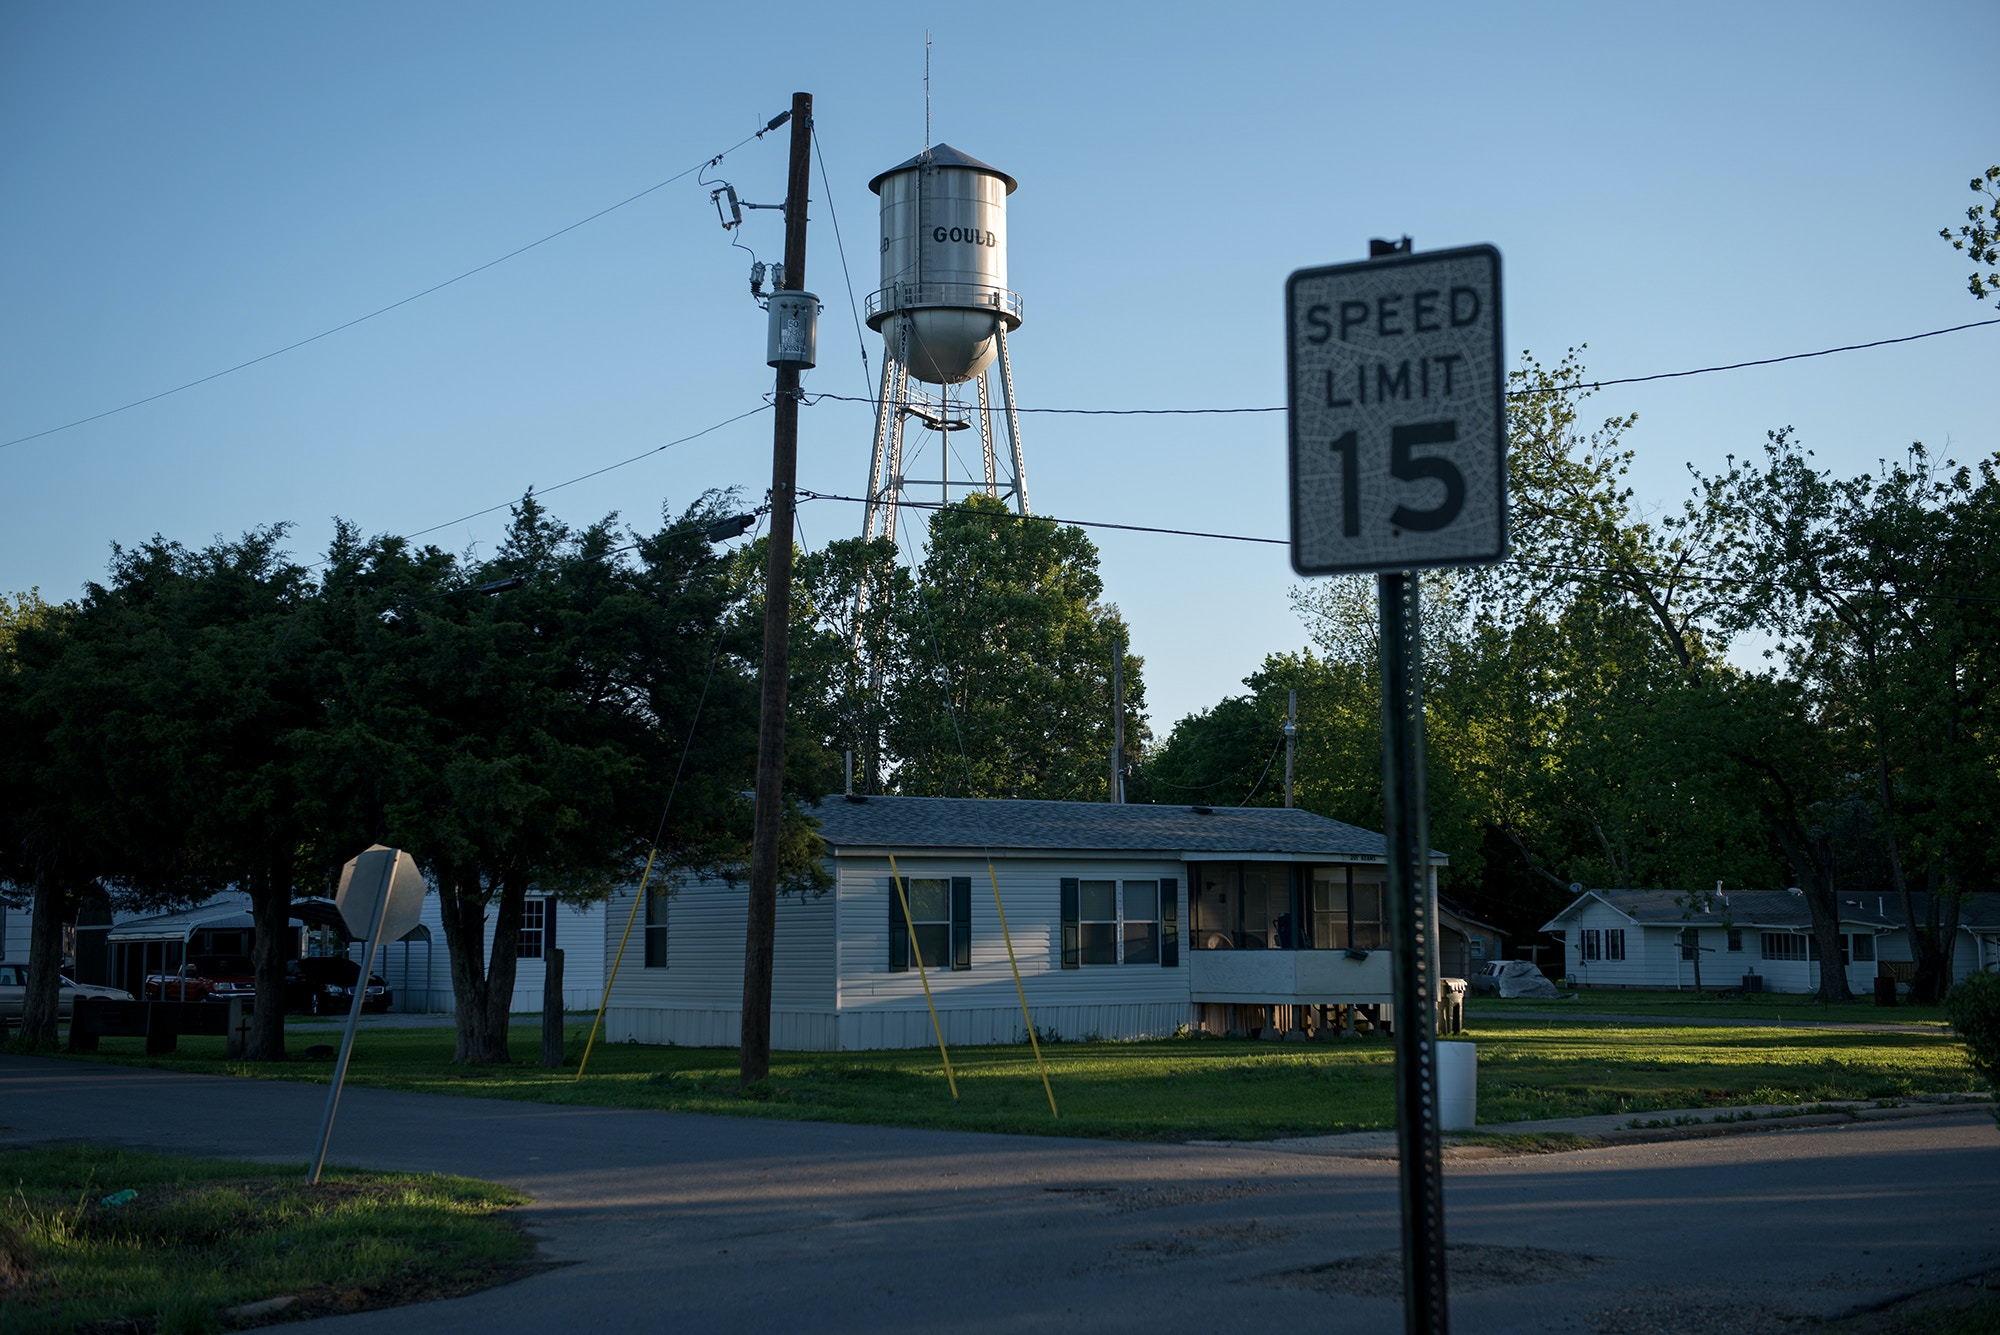 A scene from Gould, Arkansas near the Cummins Unit where the Arkansas death chamber is housed. In April four inmates were executed in eight days at the facility before a drug used in the lethal injection process expired. (Photo by Brandon Dill for The Intercept)